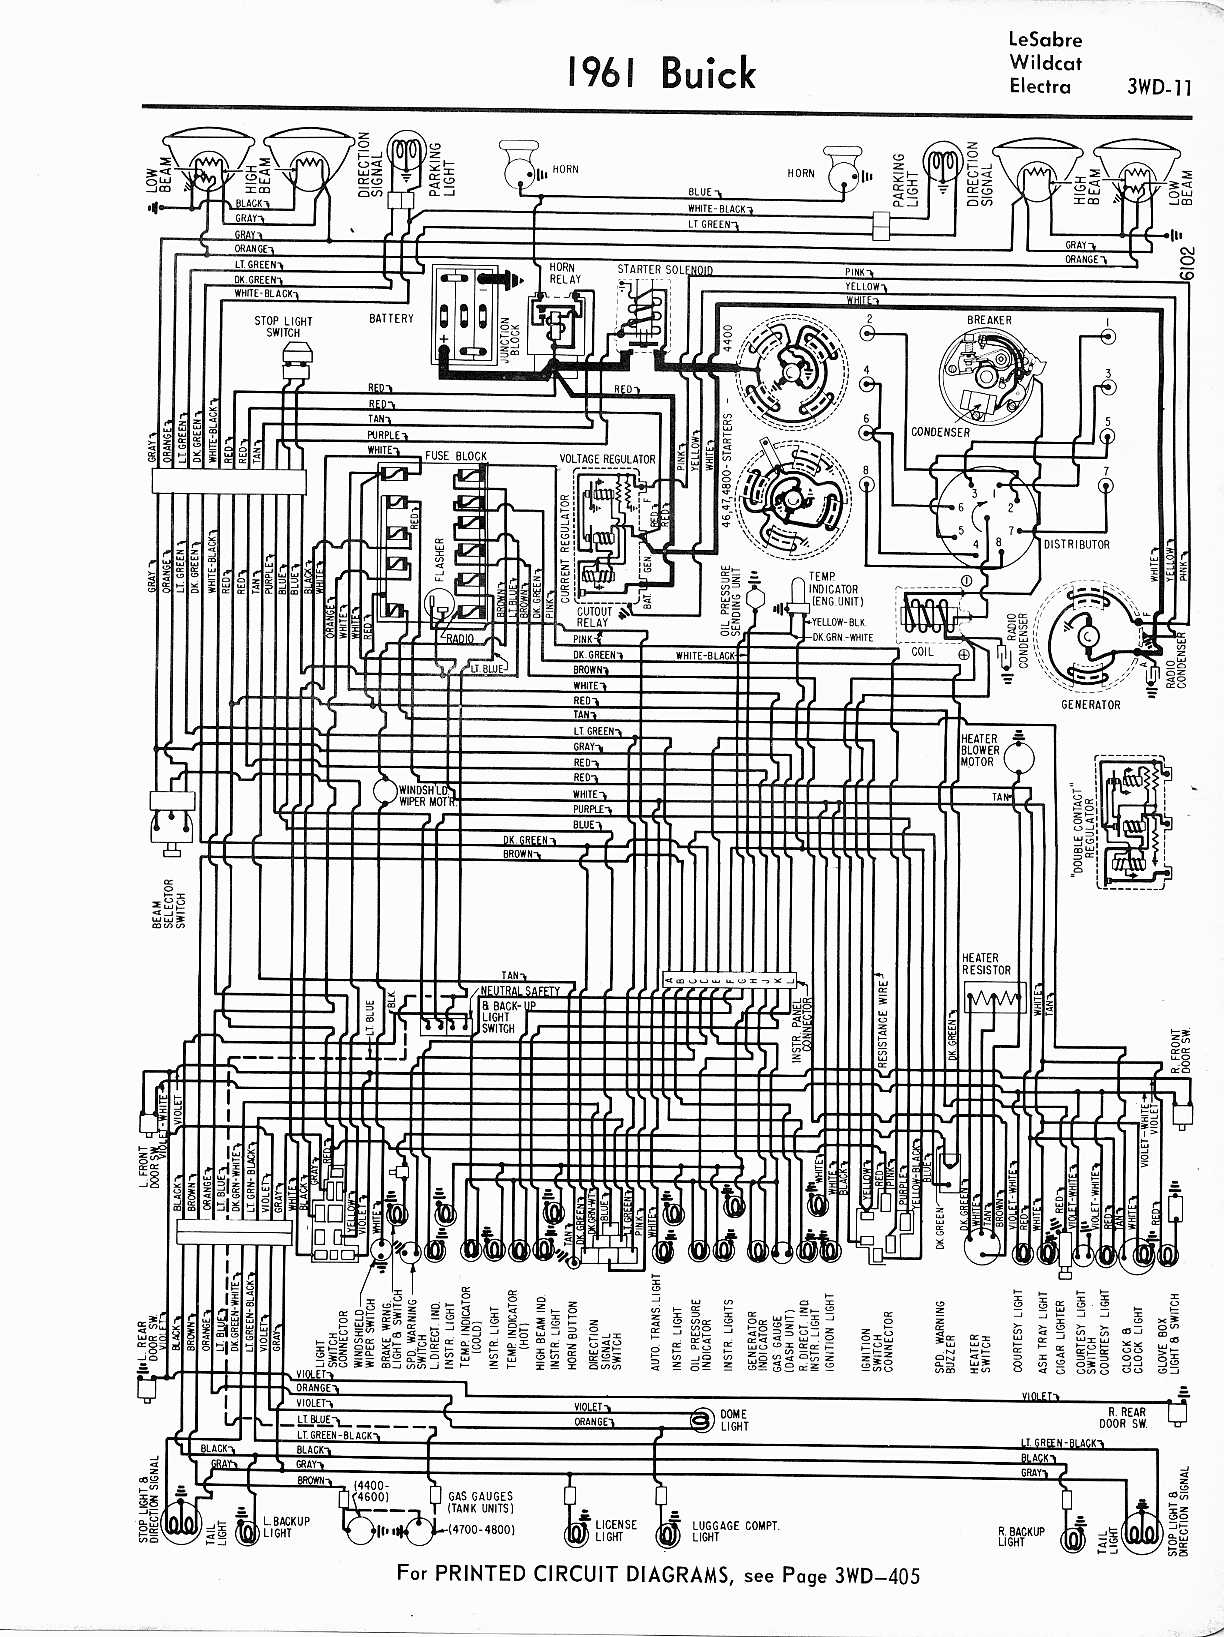 MWireBuic65_3WD 011 buick lesabre fuse box diagram wiring diagram simonand 1999 buick century fuse box diagram at et-consult.org